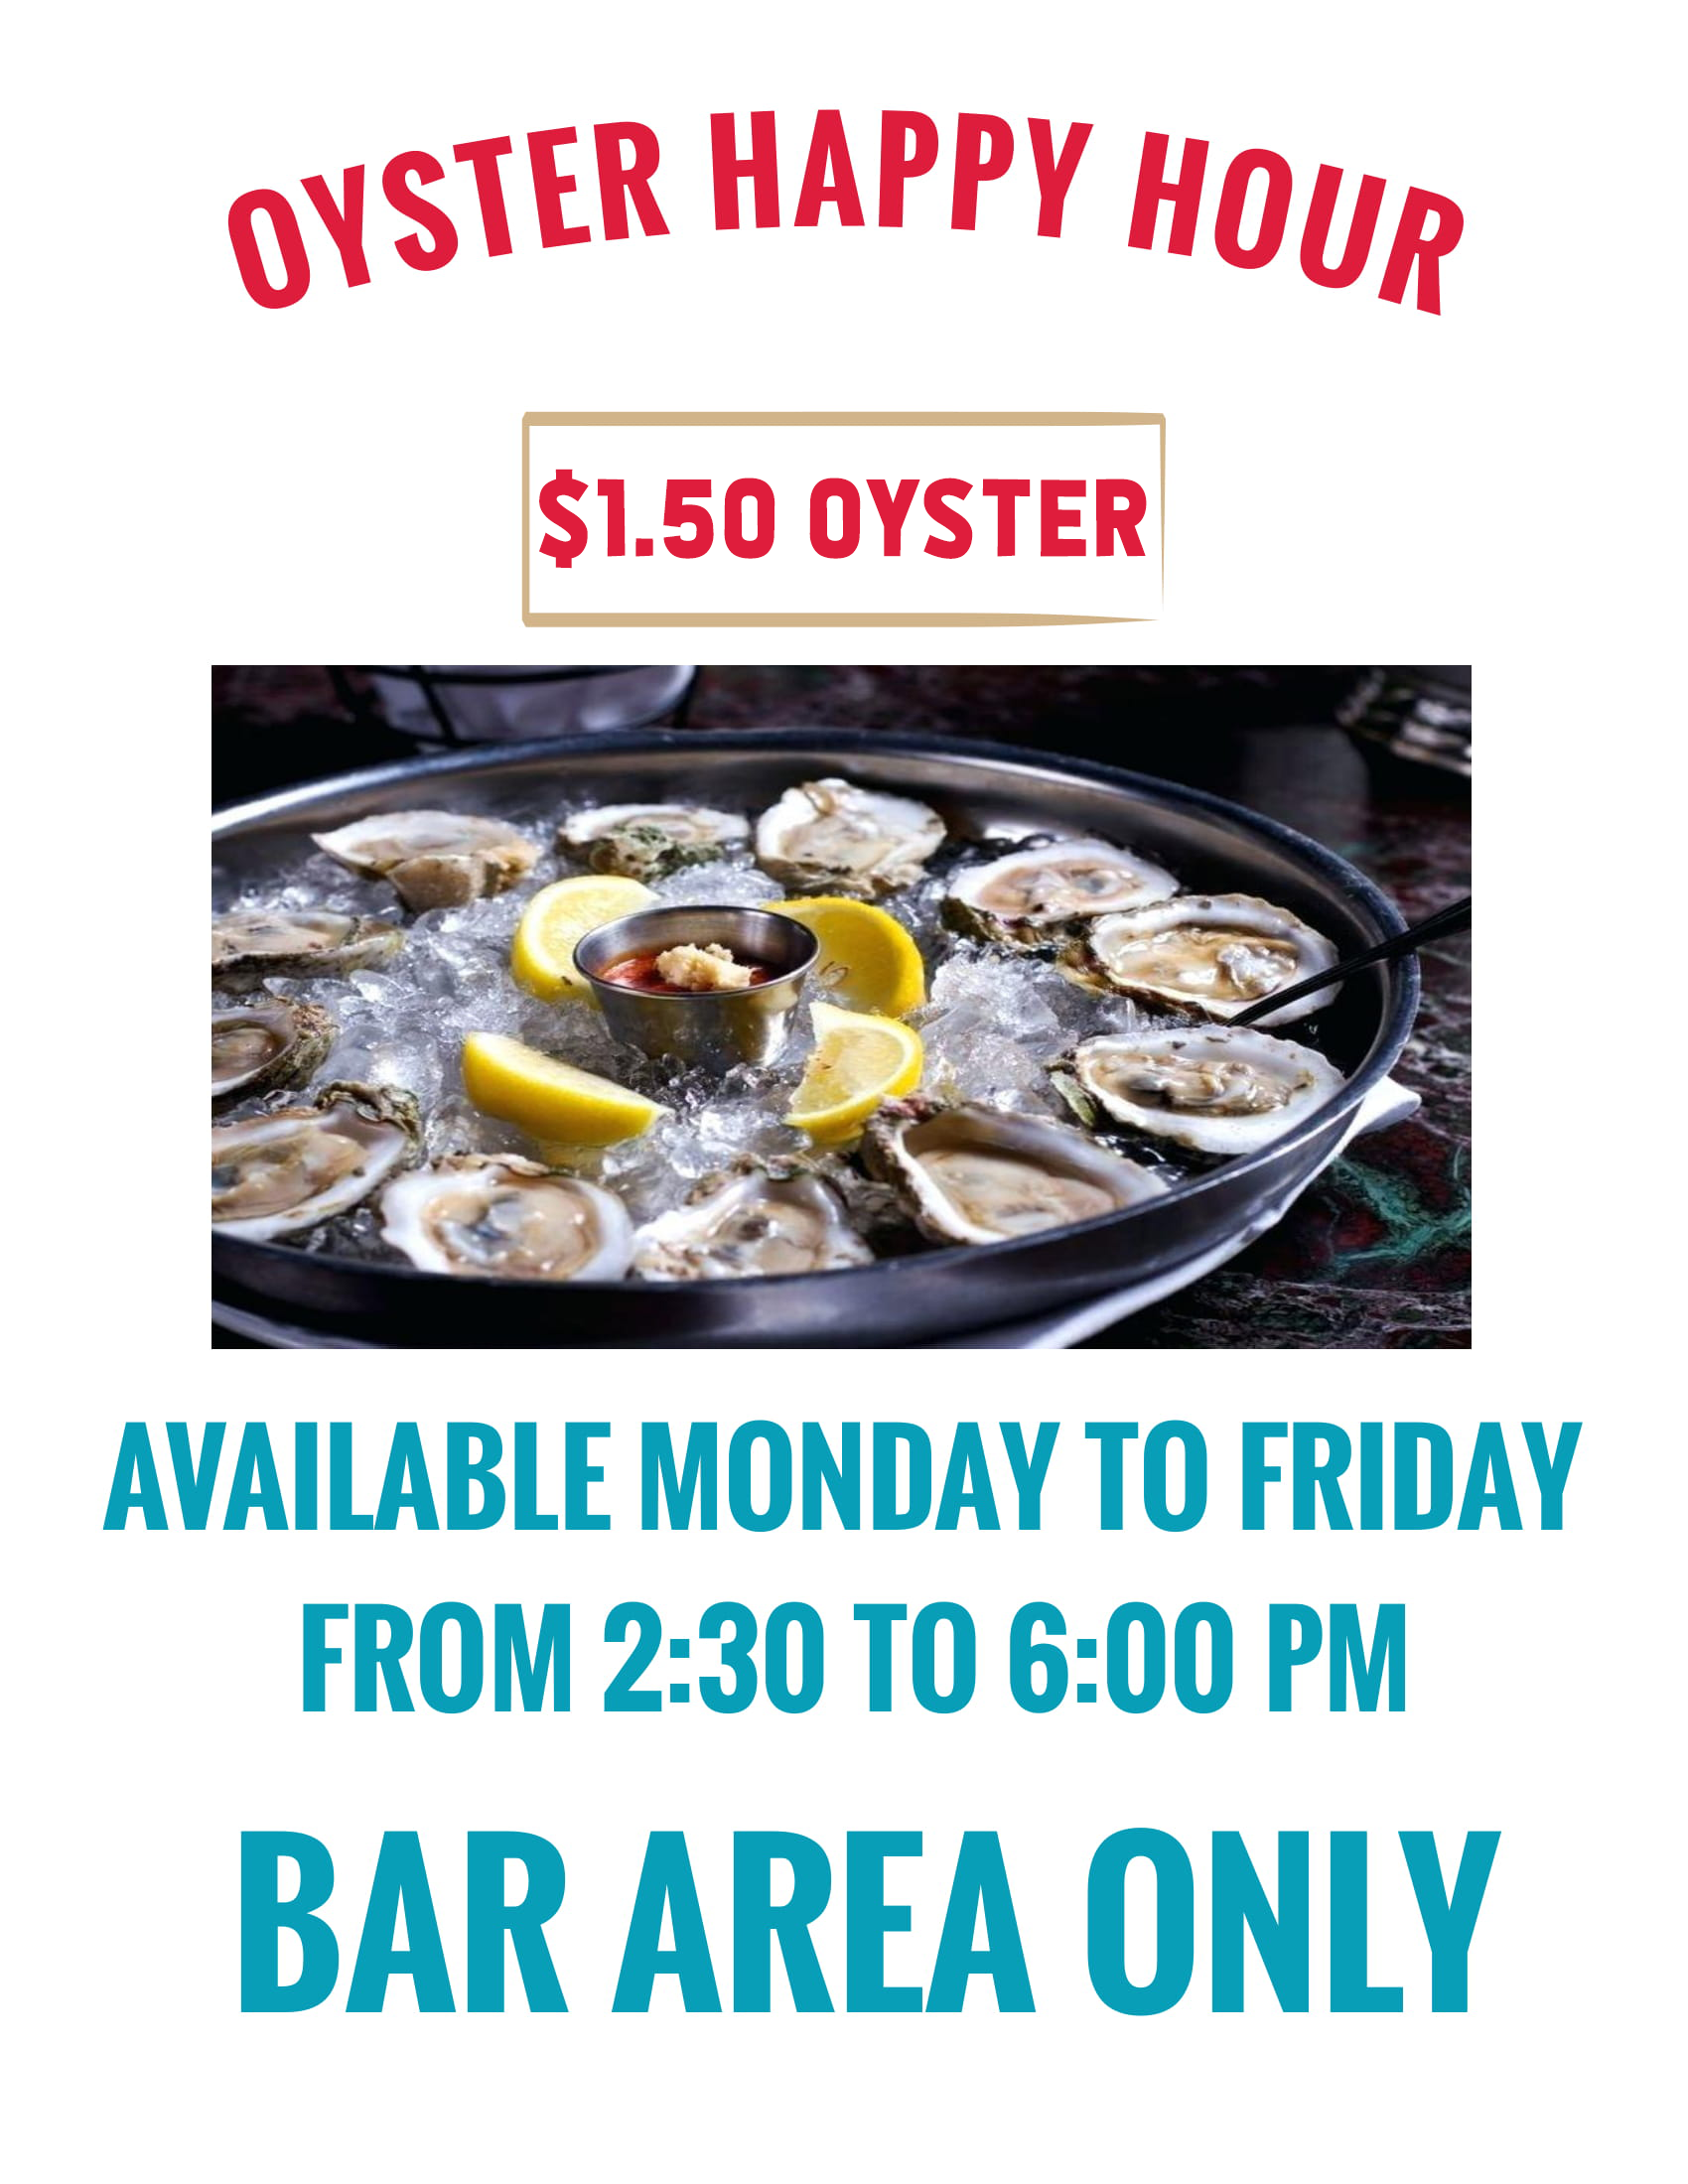 Oyster happy hour - $1.50 oysters. Available Monday through Friday from 2:30 to 6 pm in the car area only